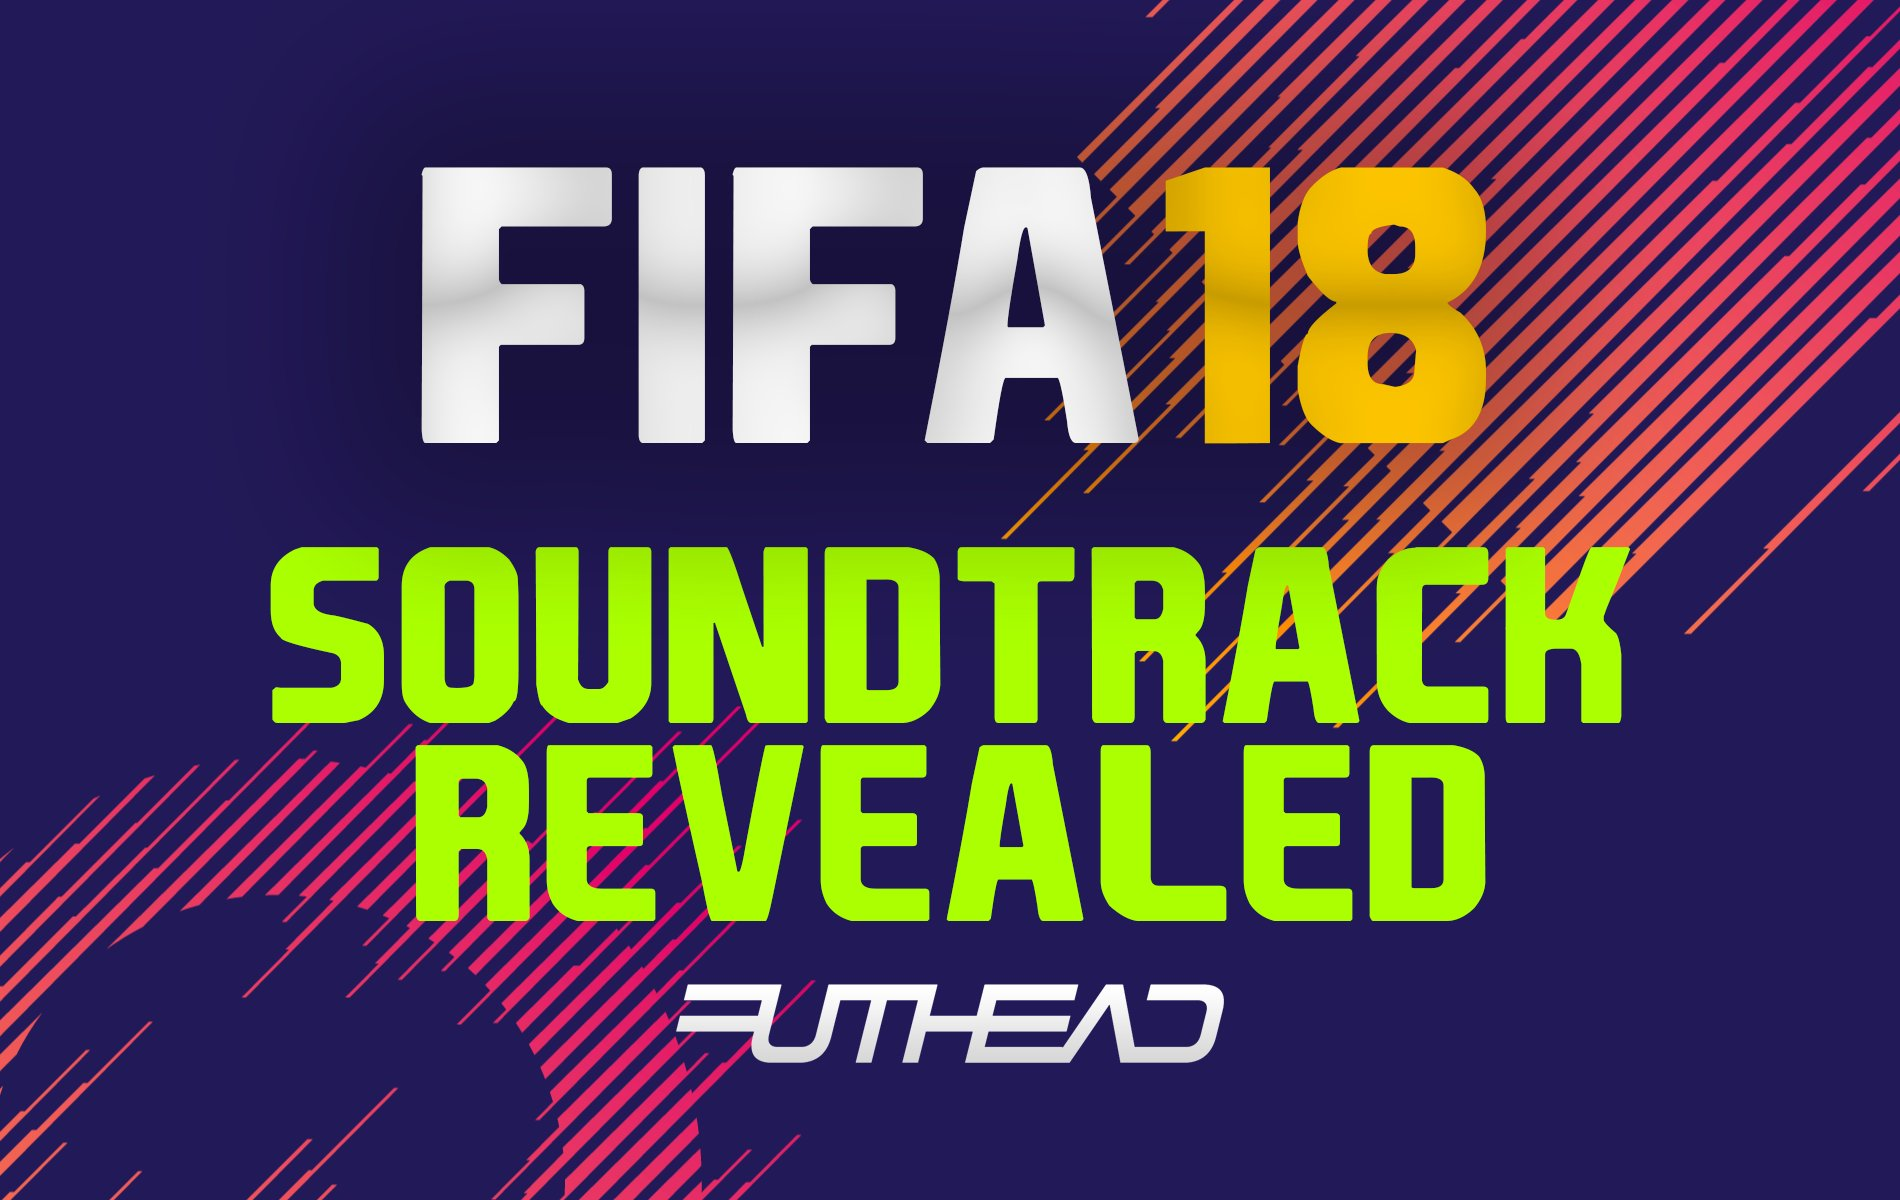 can i get a on mobile home with Full Fifa 18 Soundtrack Revealed on Marketing Teams Will Soon Include Engagement Scientists 2 138432 furthermore Hanging Rock Trail together with 406105 Foreign Citizens Serving In Russian furthermore Things To Remember Before Submitting An App For Review further 146585 A Closer Look At The Wireless Spectrum Crunch.